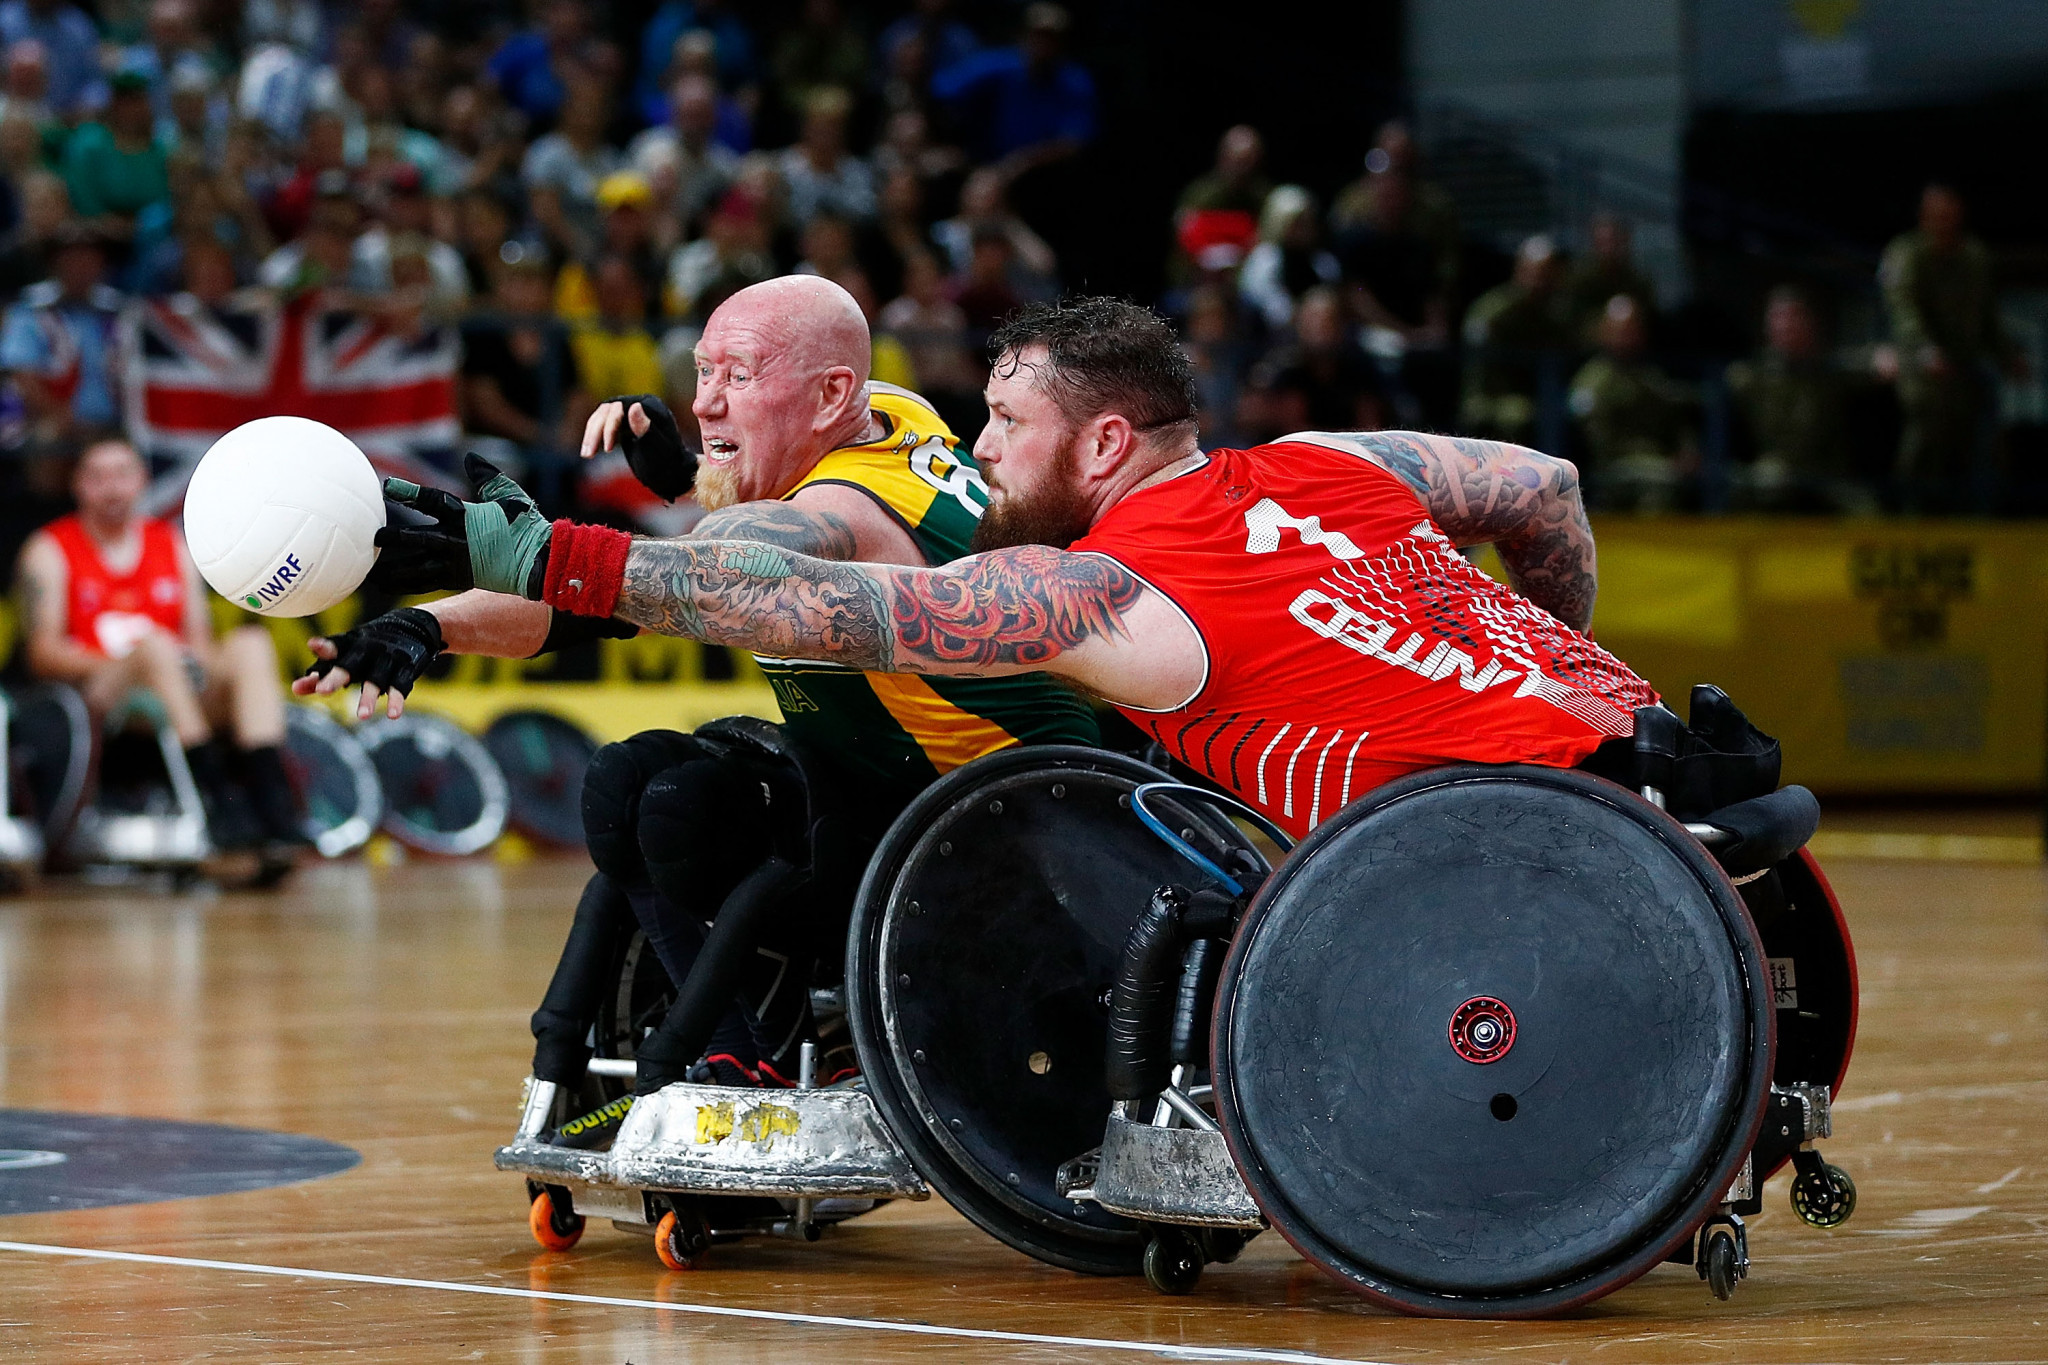 Australia clinch wheelchair rugby gold at Invictus Games in Sydney